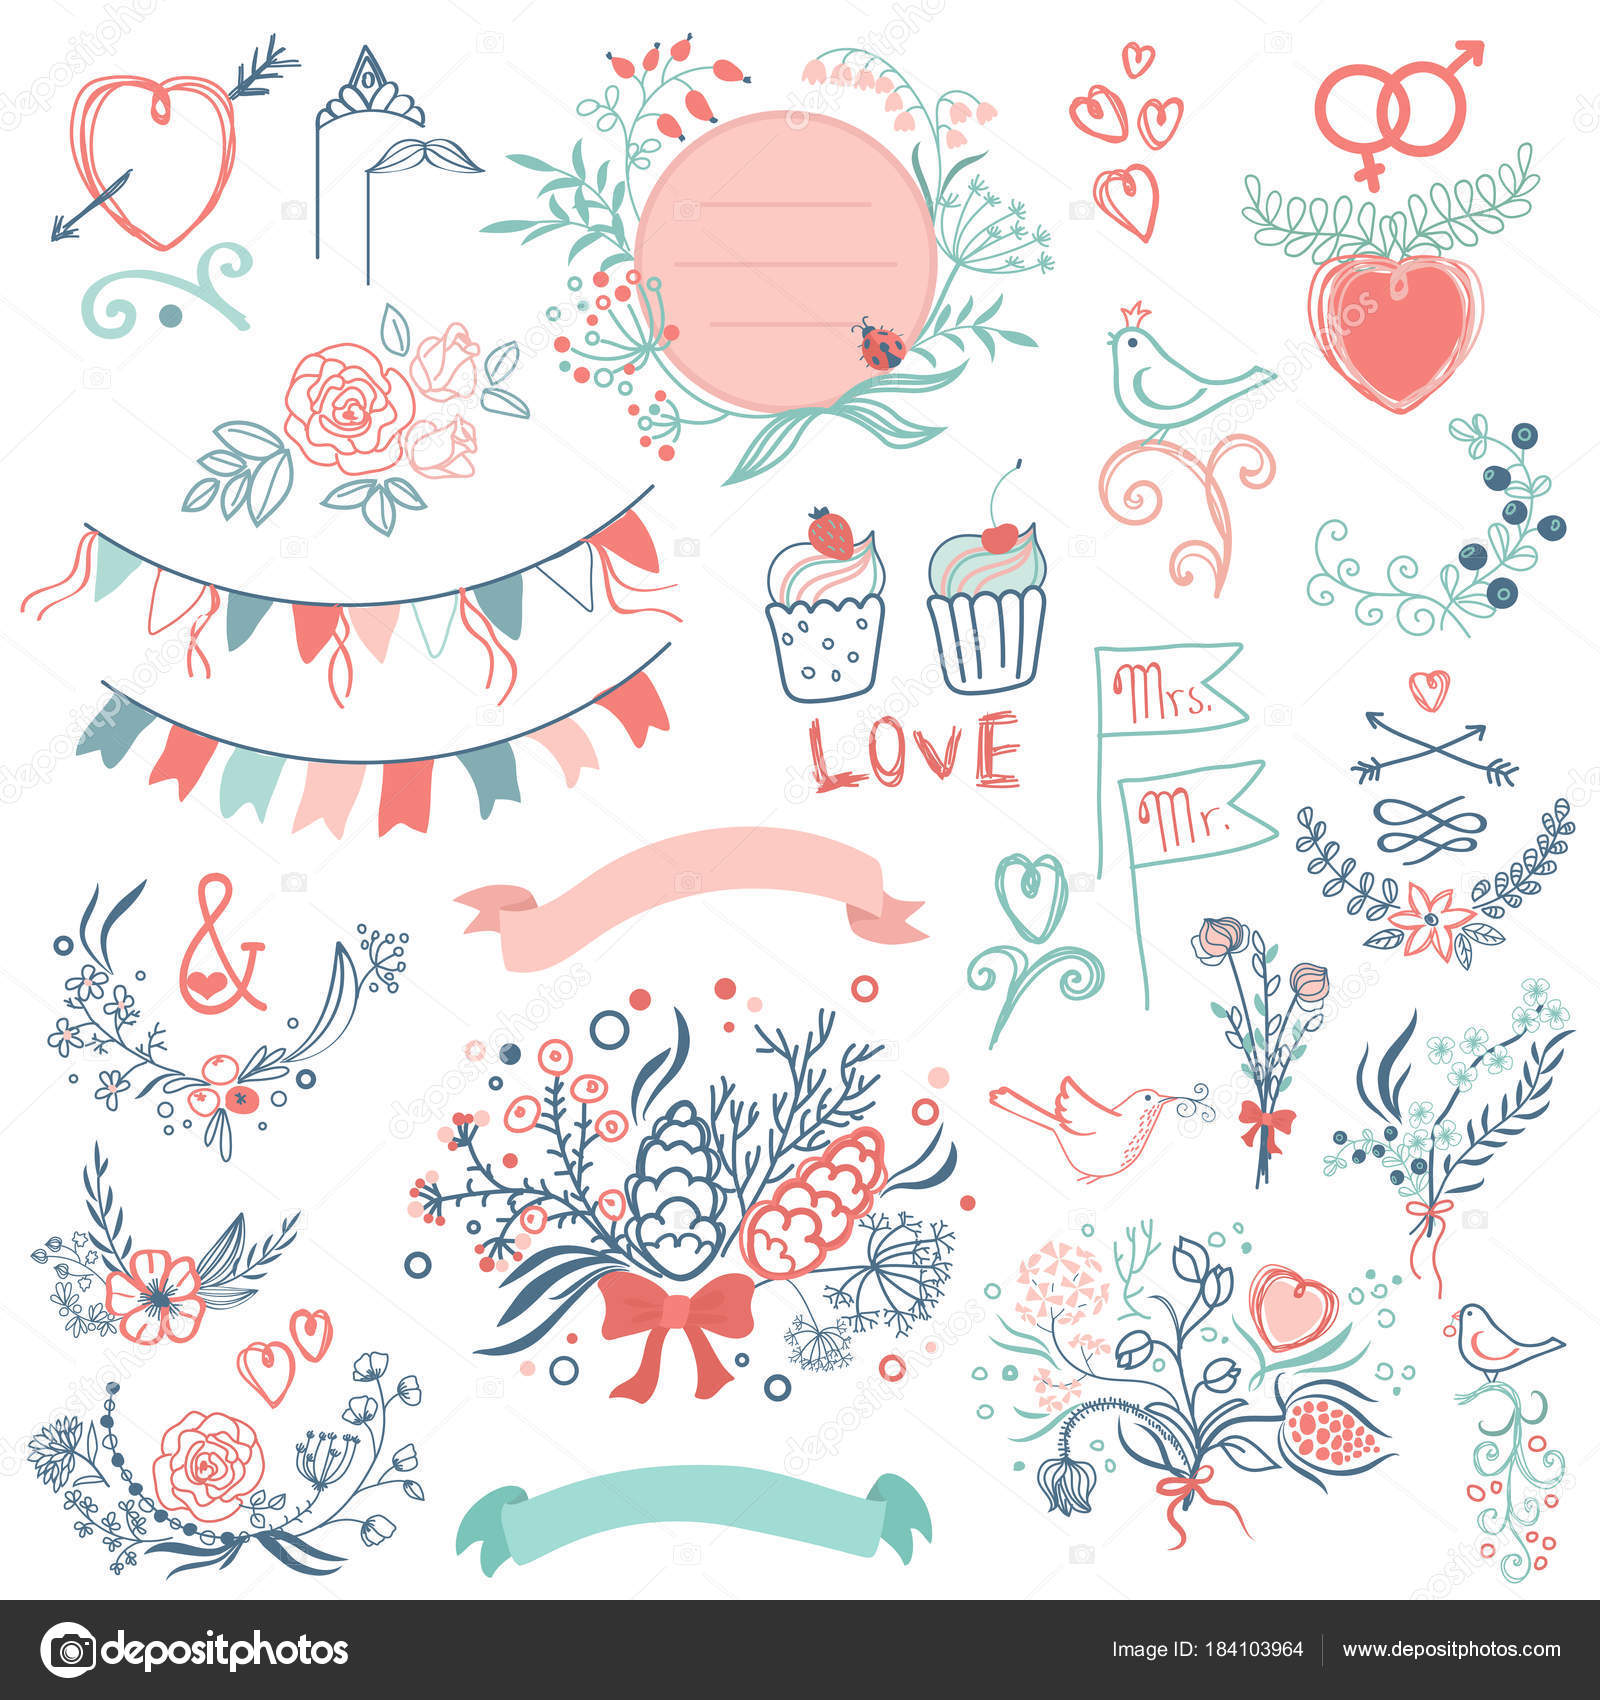 Wedding Modern Vintage Graphic Collection Of Cute Ribbons Wreaths Arrows Hearts Laurel And Labels Vector By Lembergvector